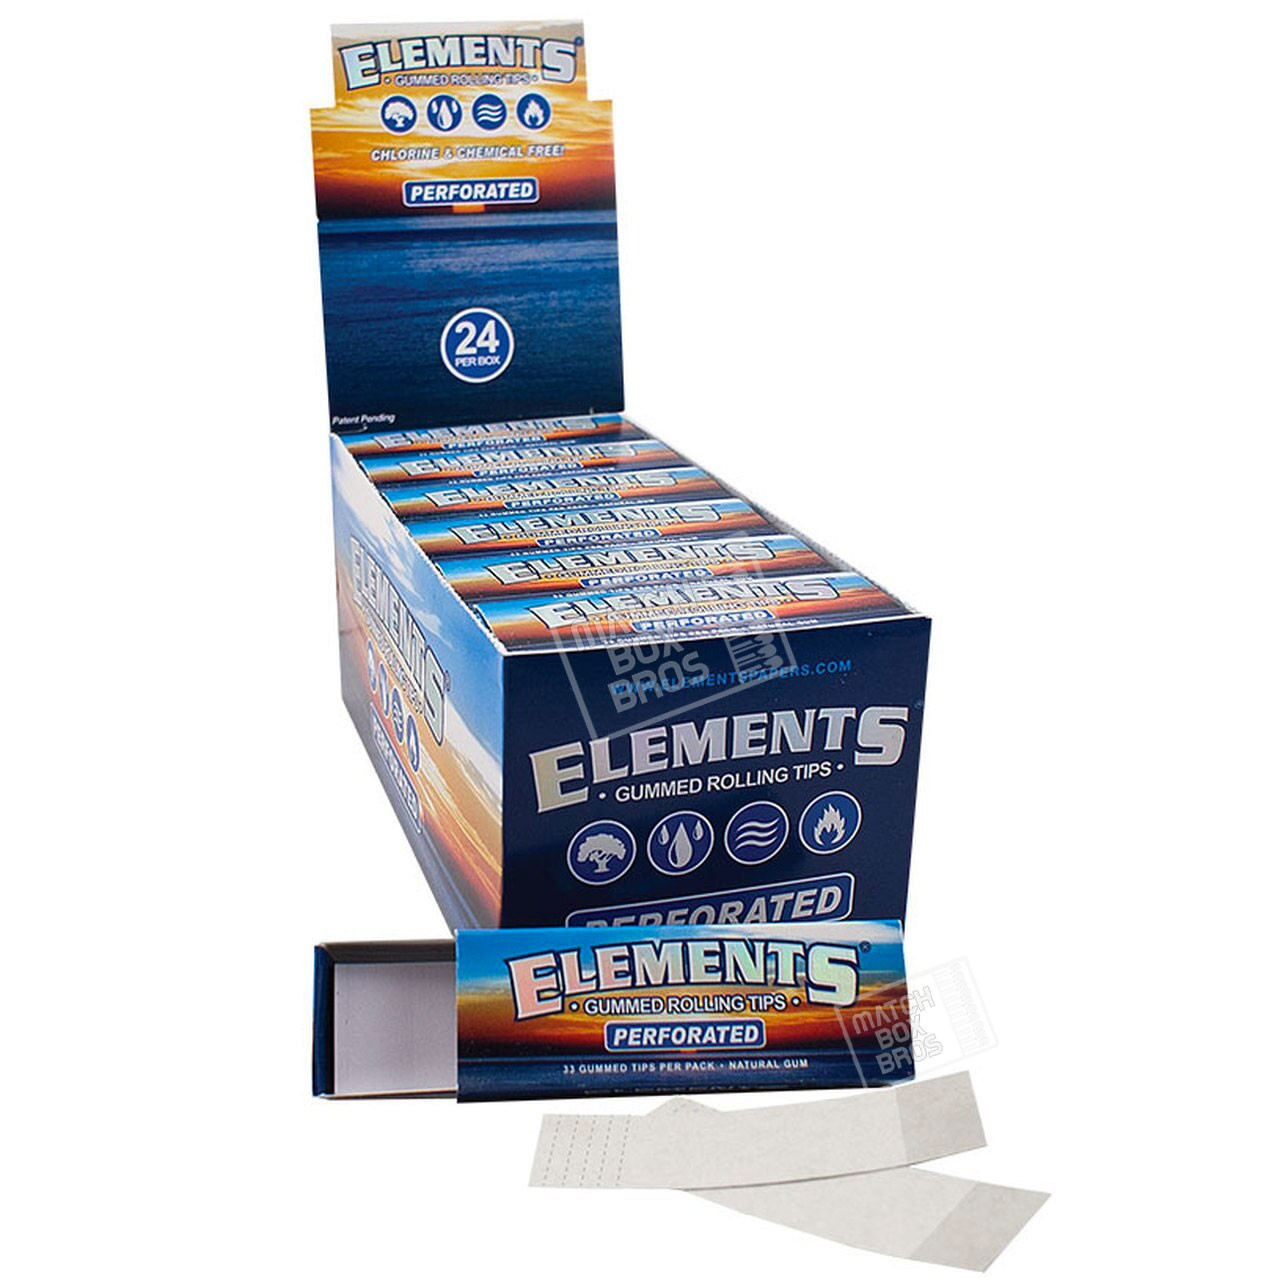 Elements Gummed Tips Perforated Full Box